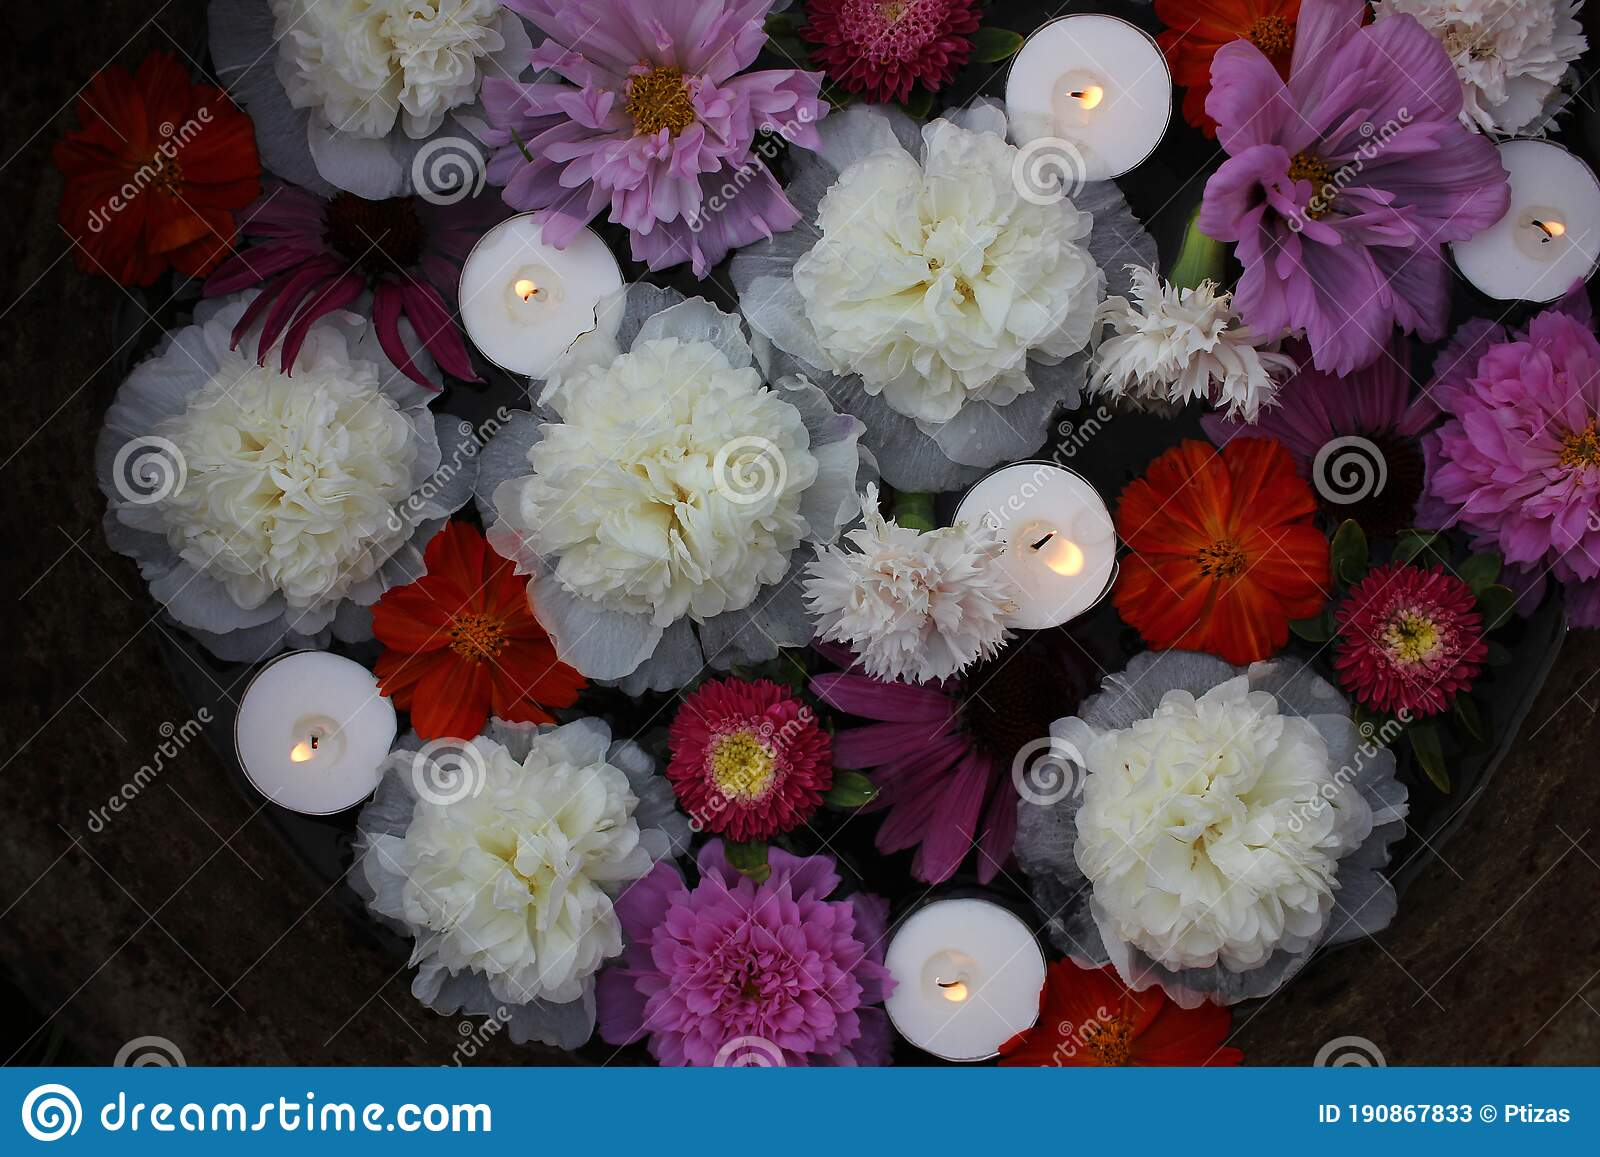 Floating Candles And Flowers In Old Zins Basin Summer Garden Party Outdoor Decor Ideas Stock Image Image Of Light Ideas 190867833